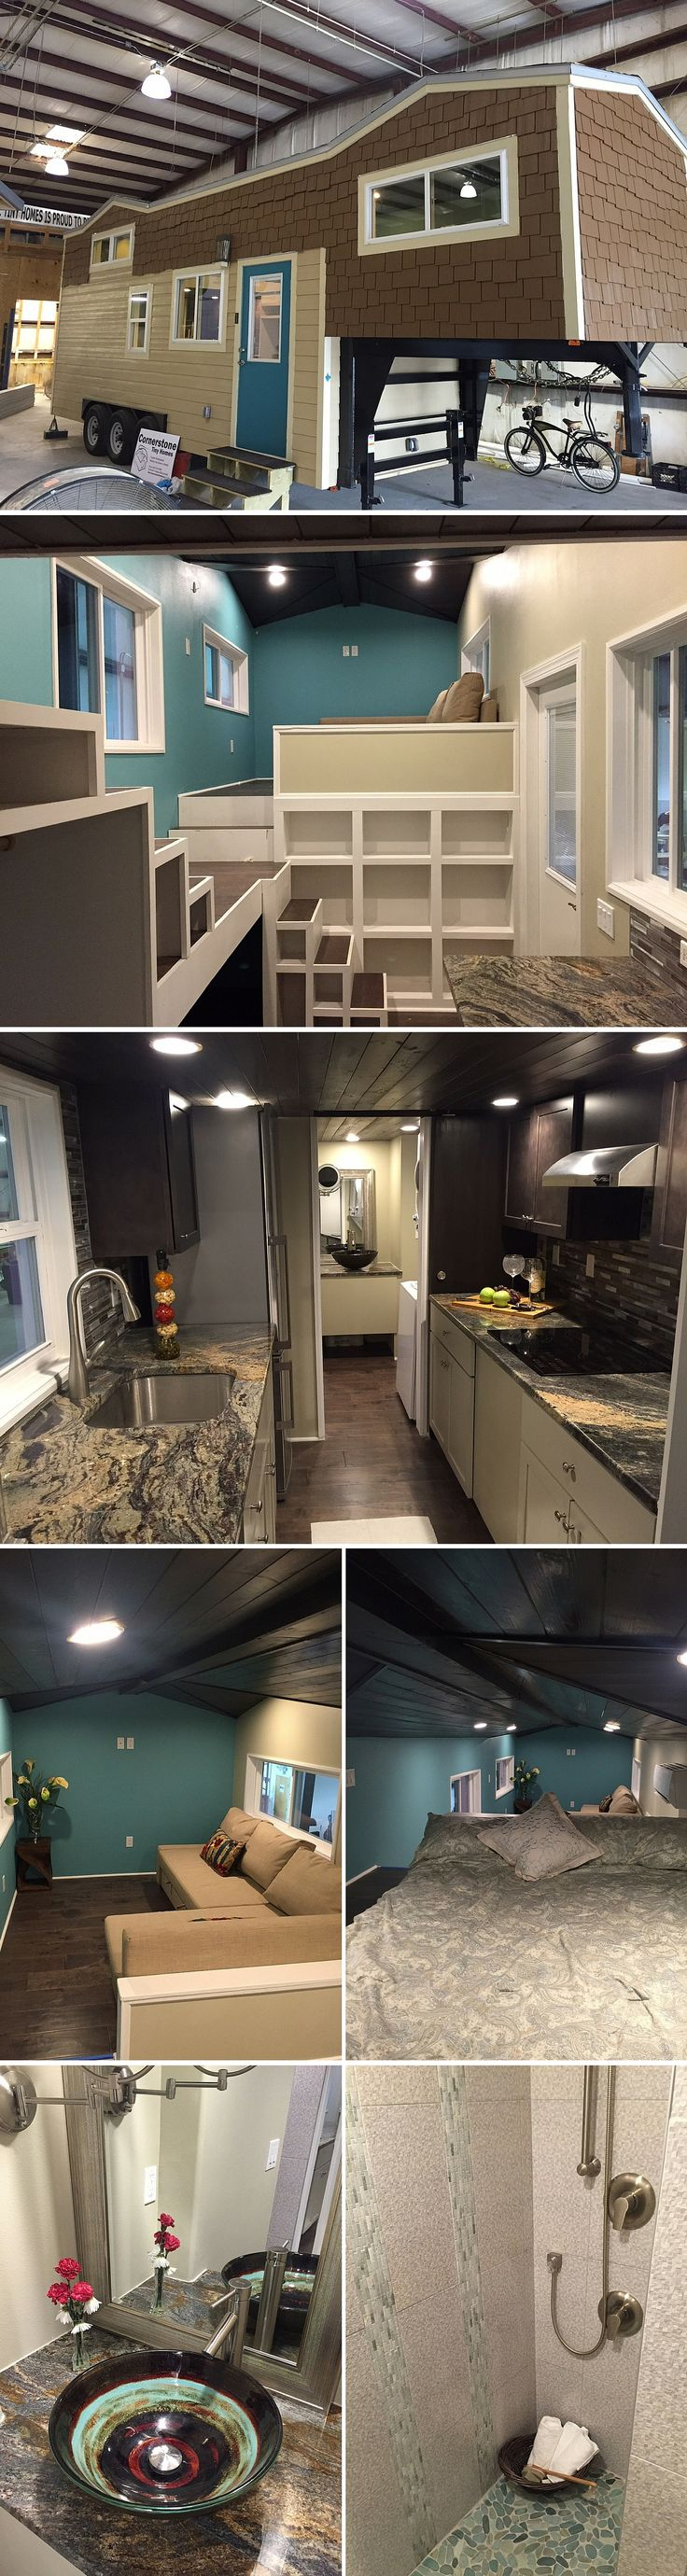 The Westbury tiny house from Cornerstne Tiny Homes